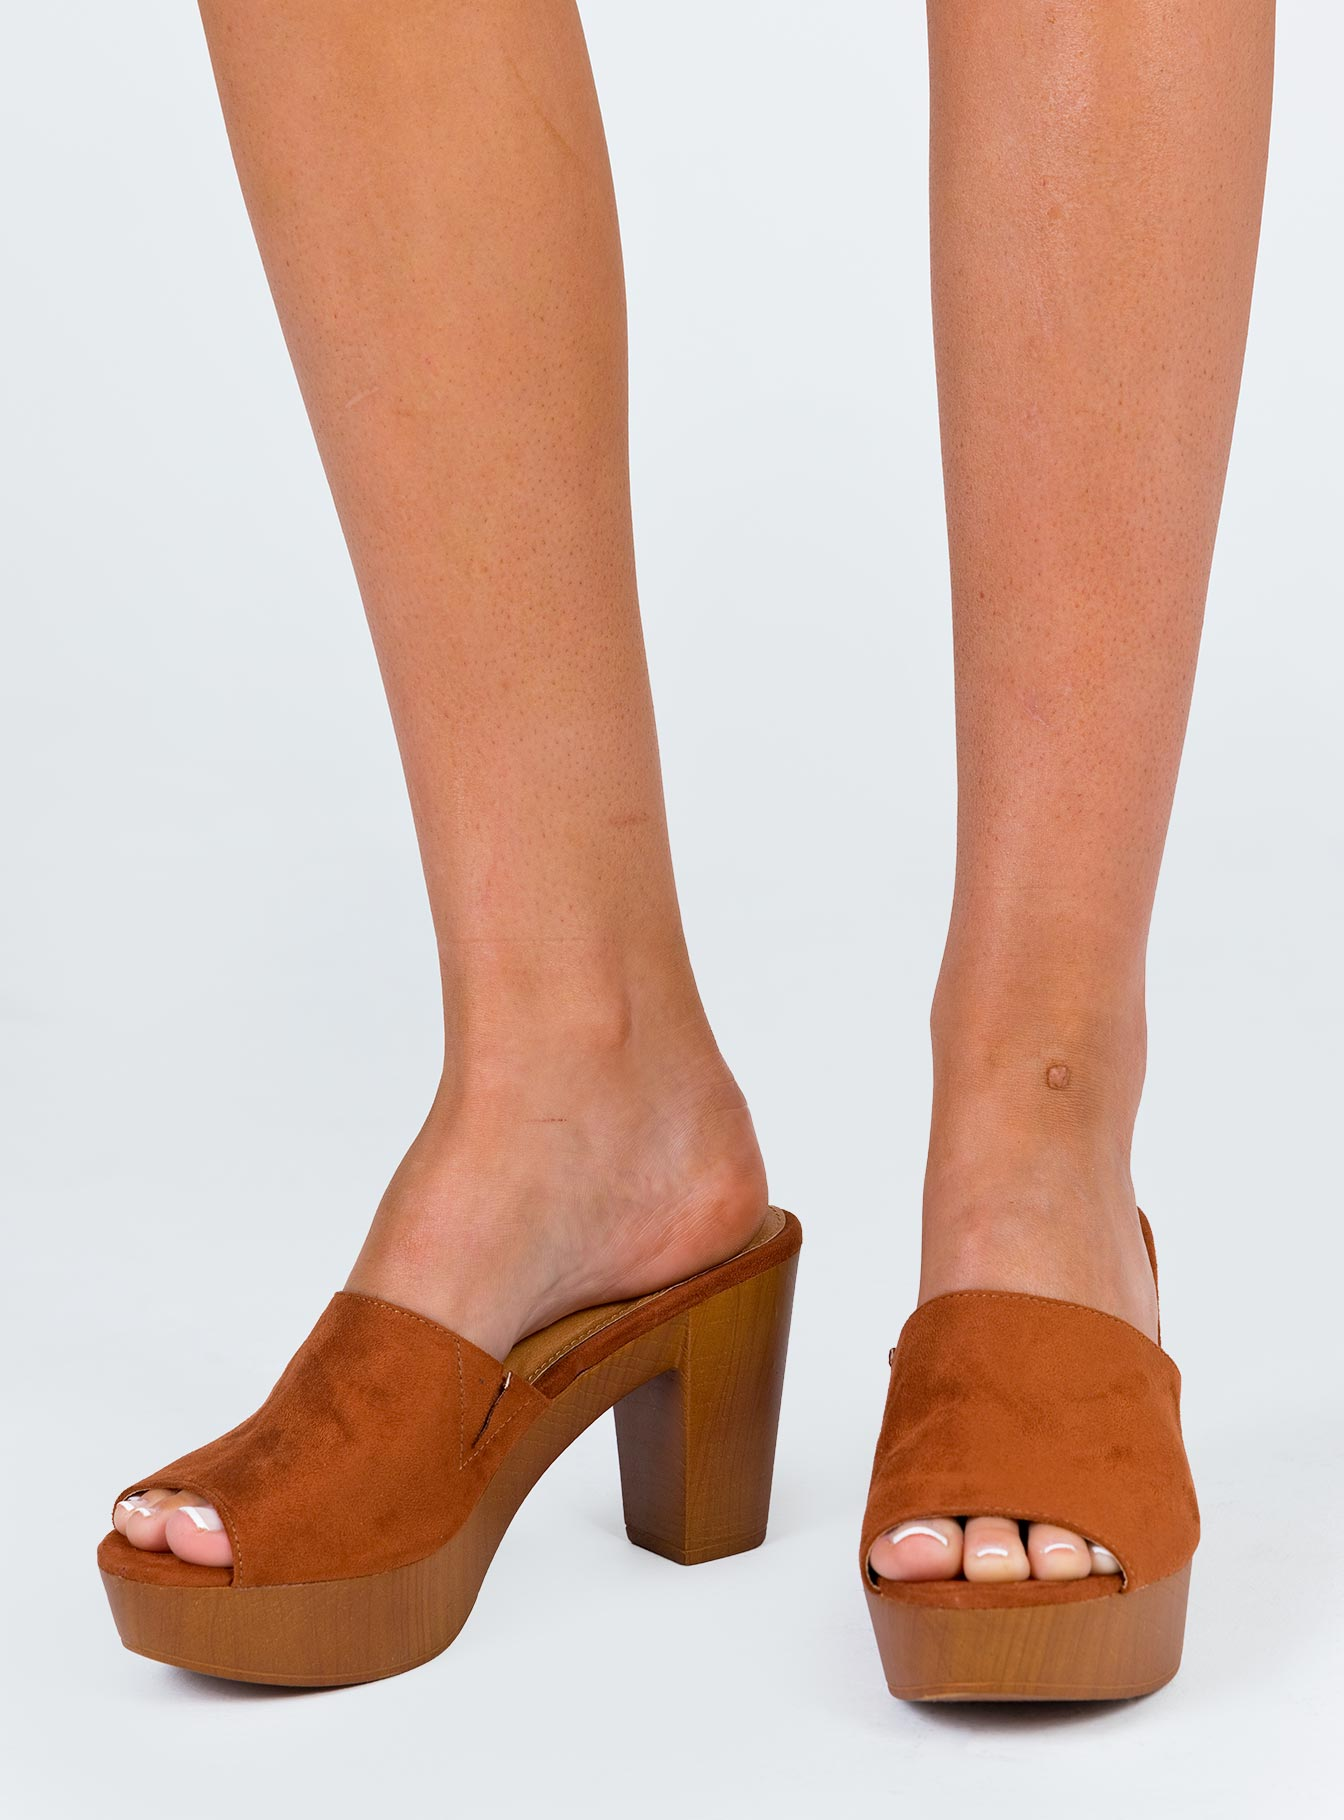 Therapy Gipsy Heels